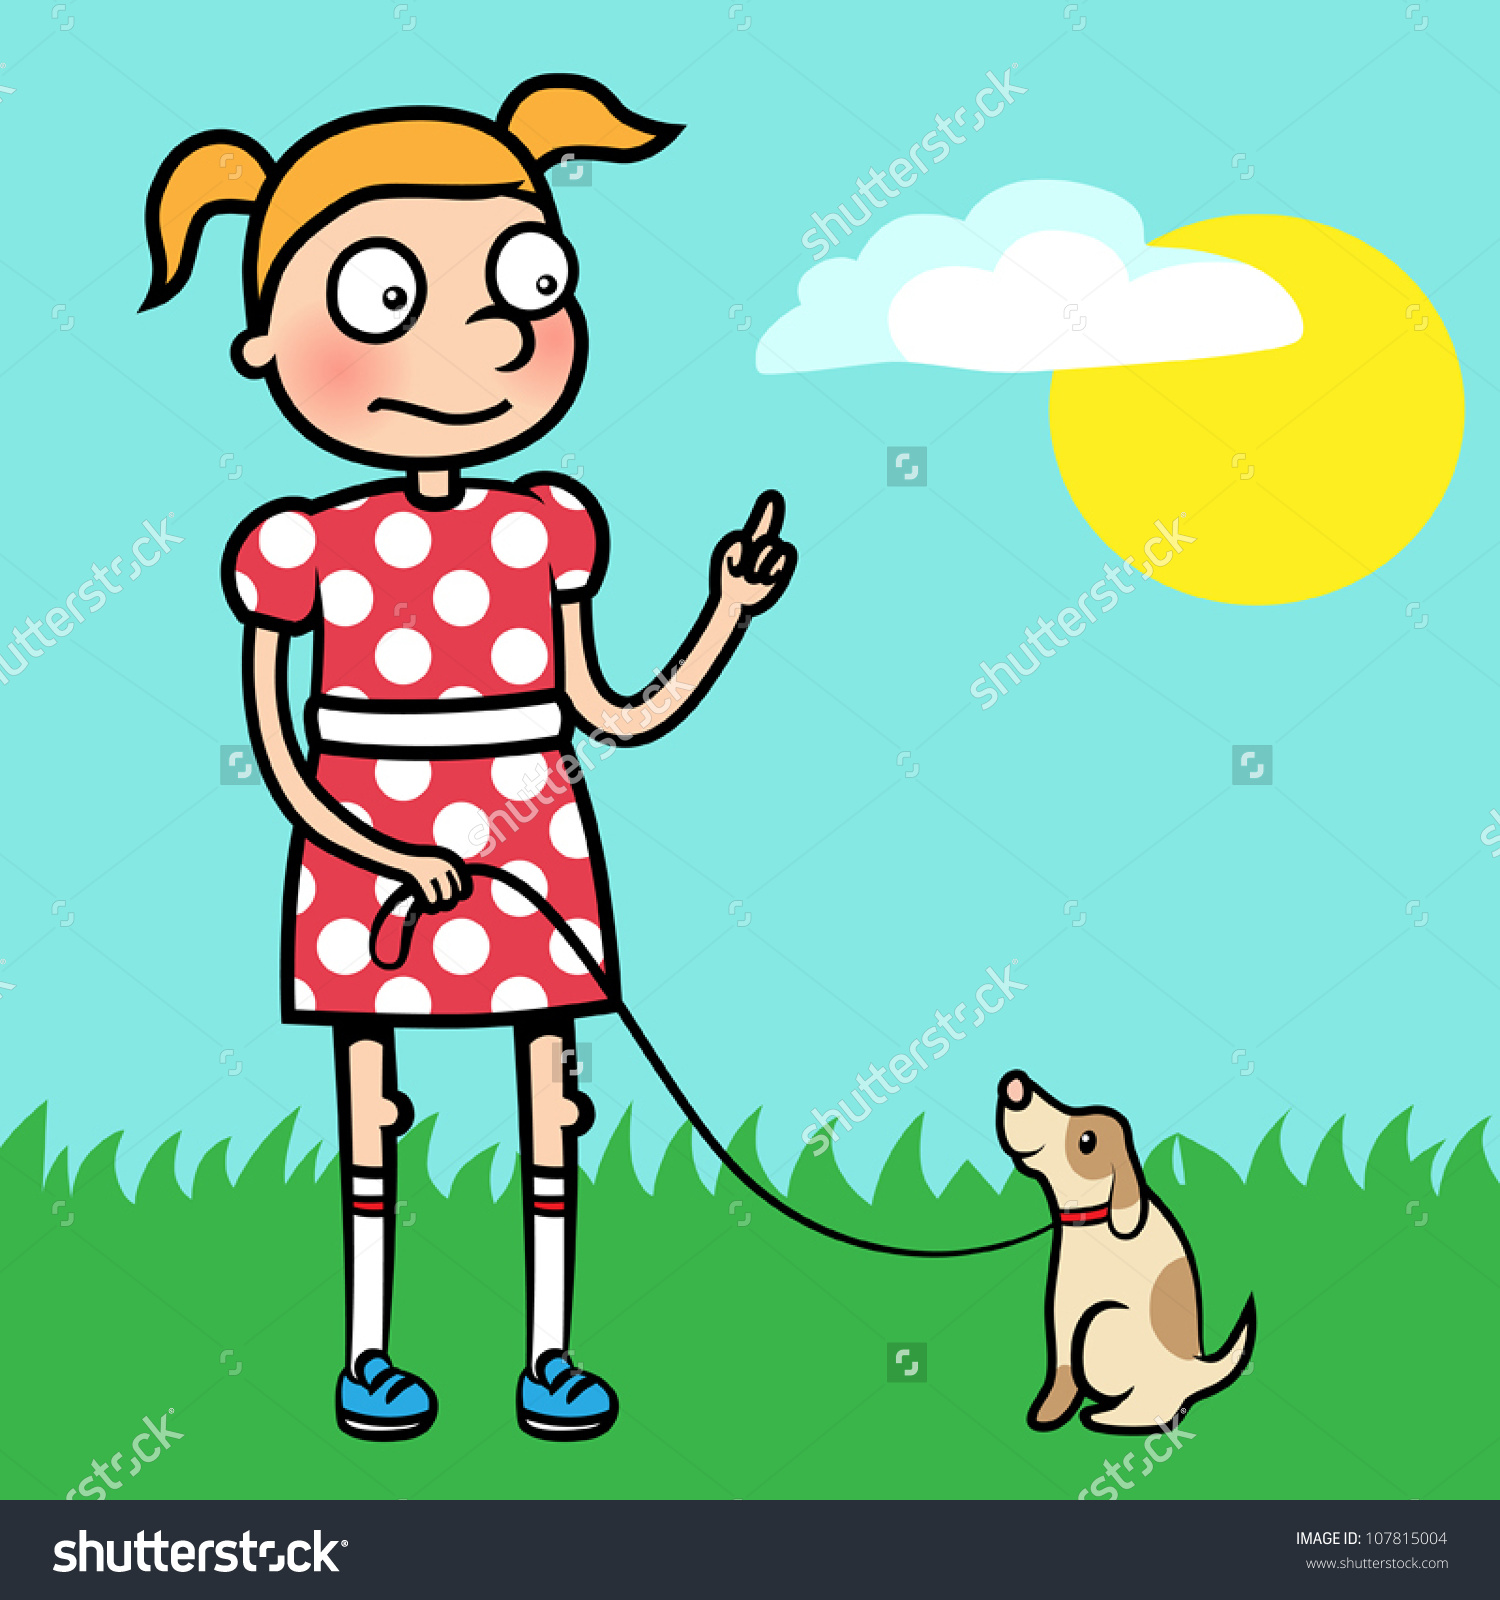 Cartoon Vector Illustration Of A Young Girl Training Obedience.